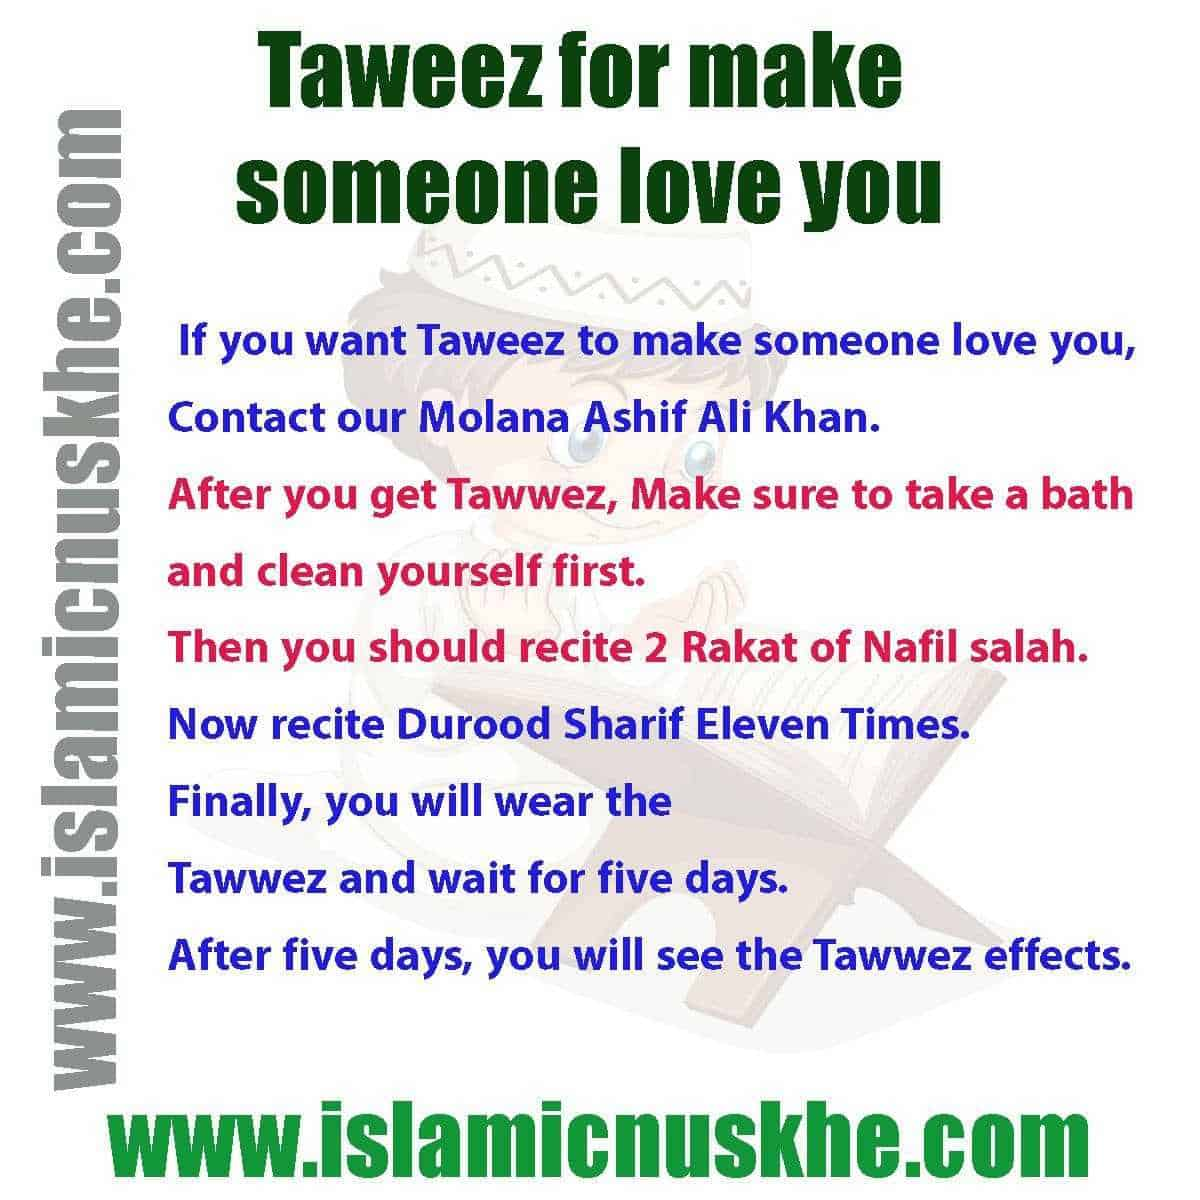 Here is Taweez for make someone love you Step by Step